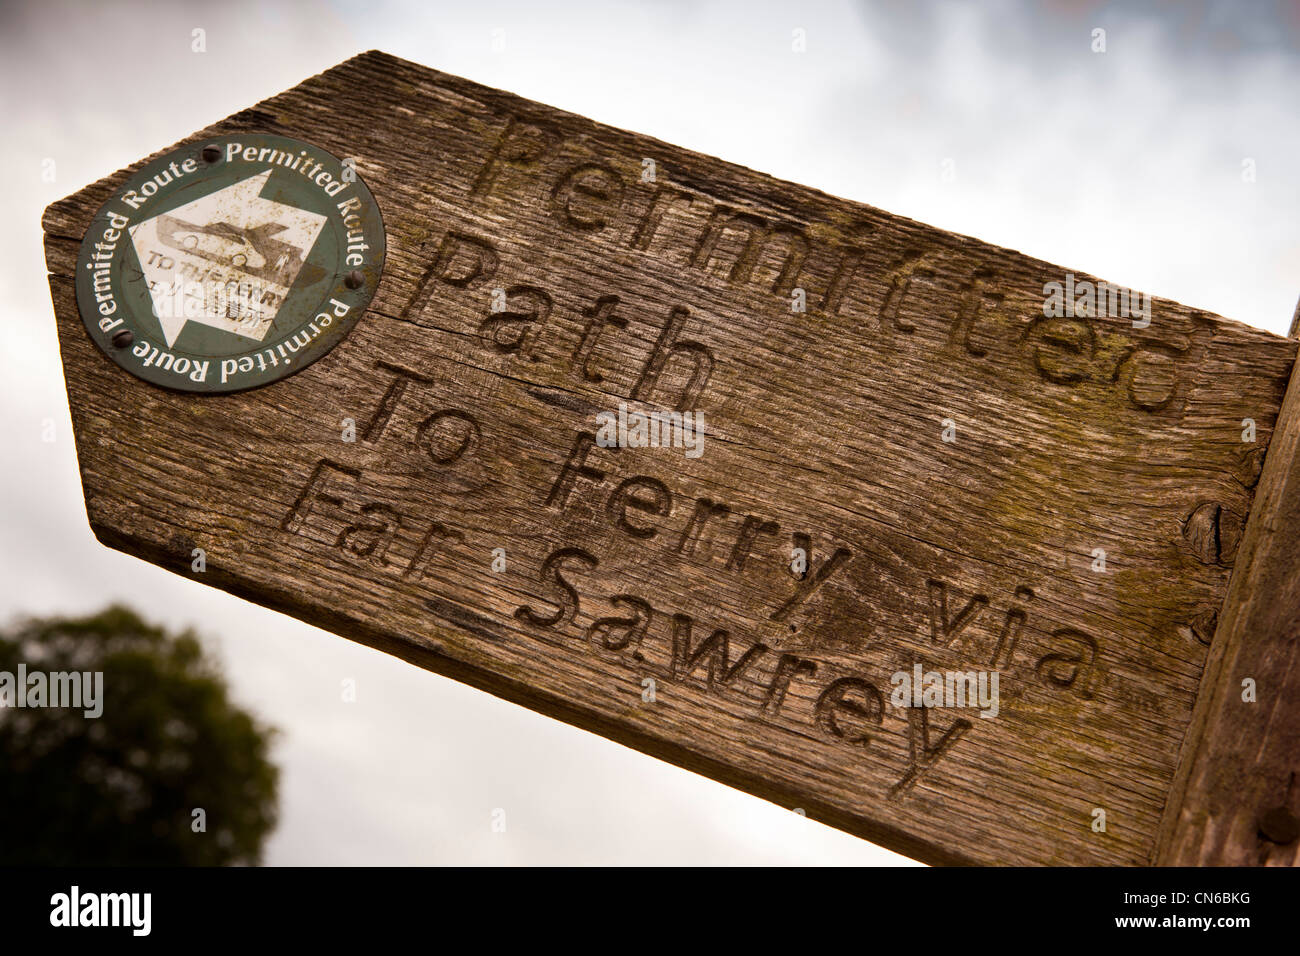 UK, Cumbria, Near Sawrey, permitted path to Far Sawrey and Bowness ferry wooden signpost with Japanese language - Stock Image